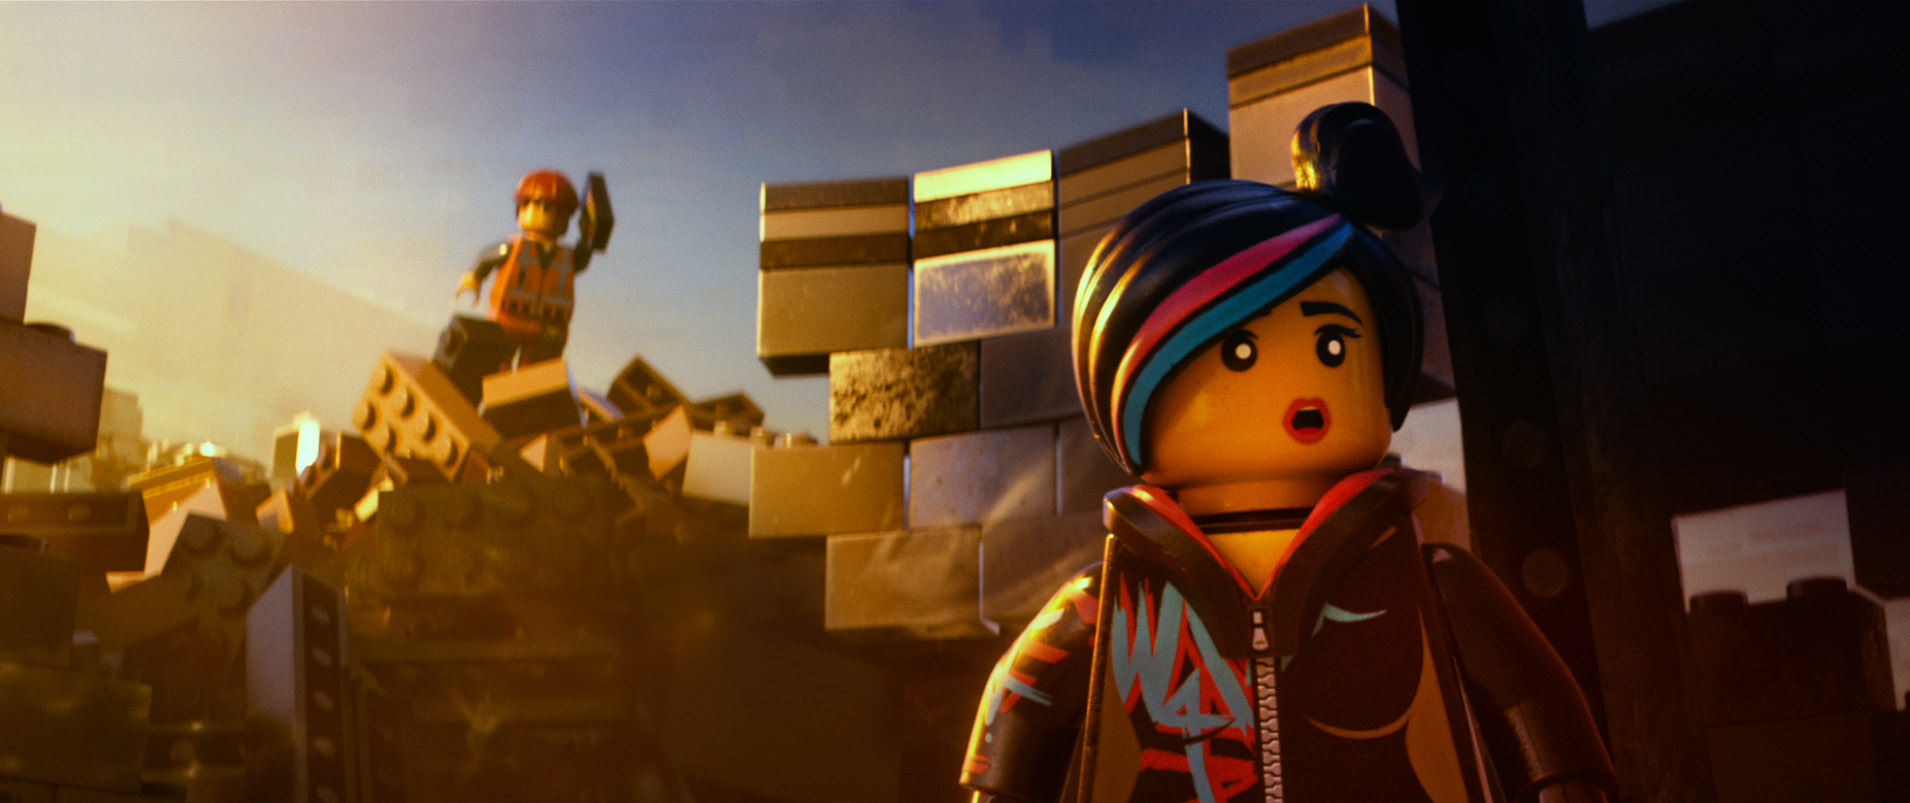 Wildstyle in Lego movie. Photo: Warner Bros. Pictures